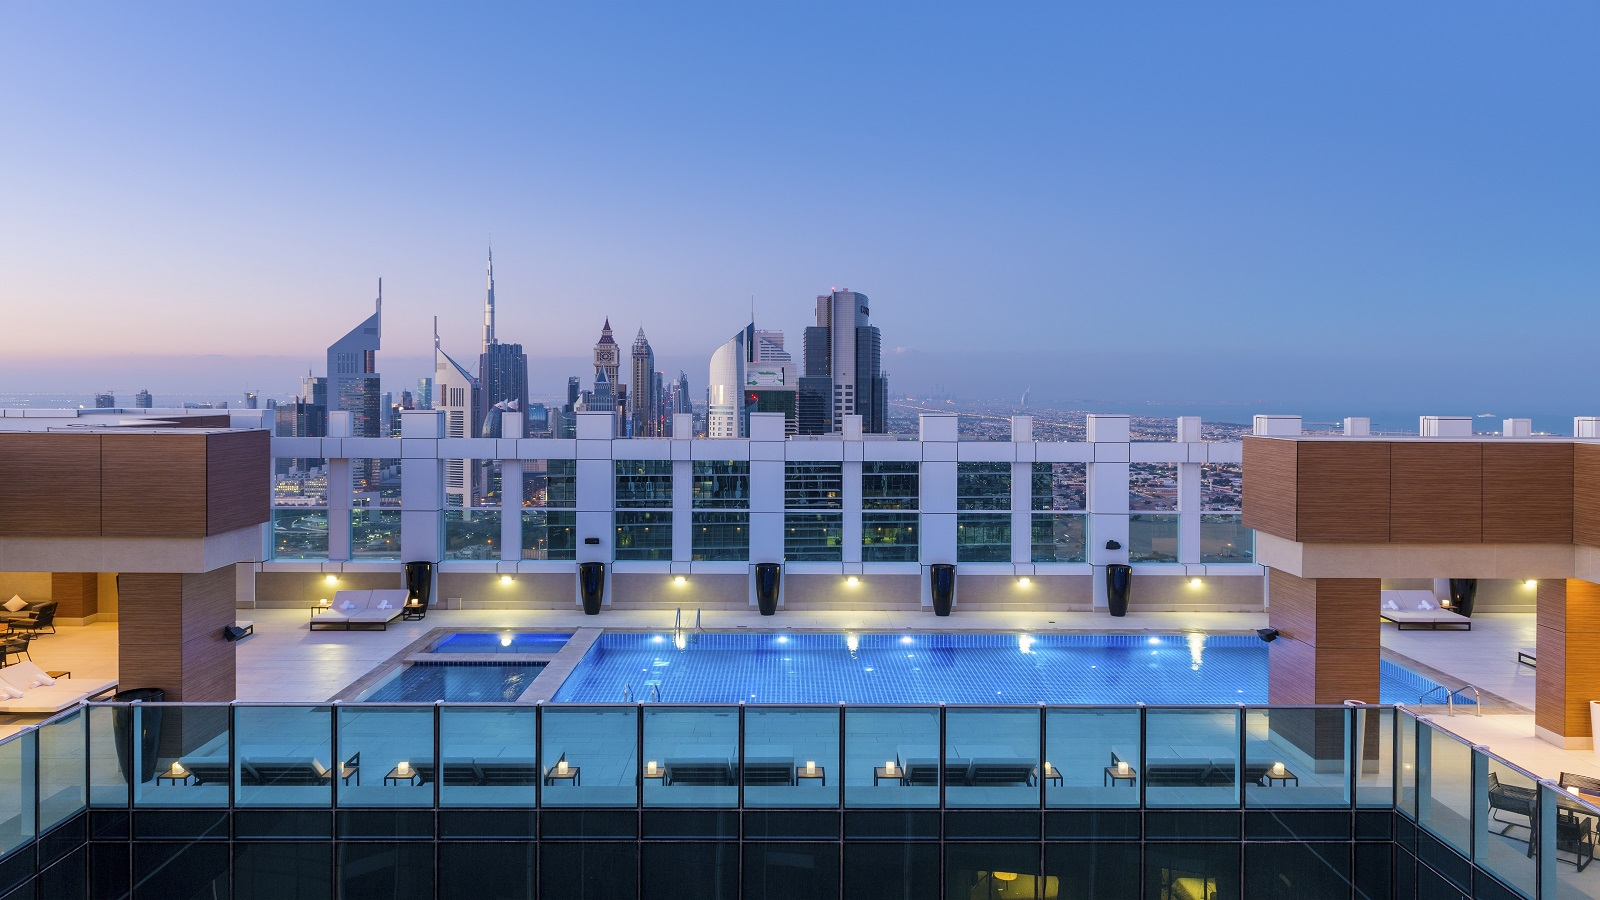 Dawn & Dusk Rooftop Terrace at Sheraton Grand Hotel, Dubai